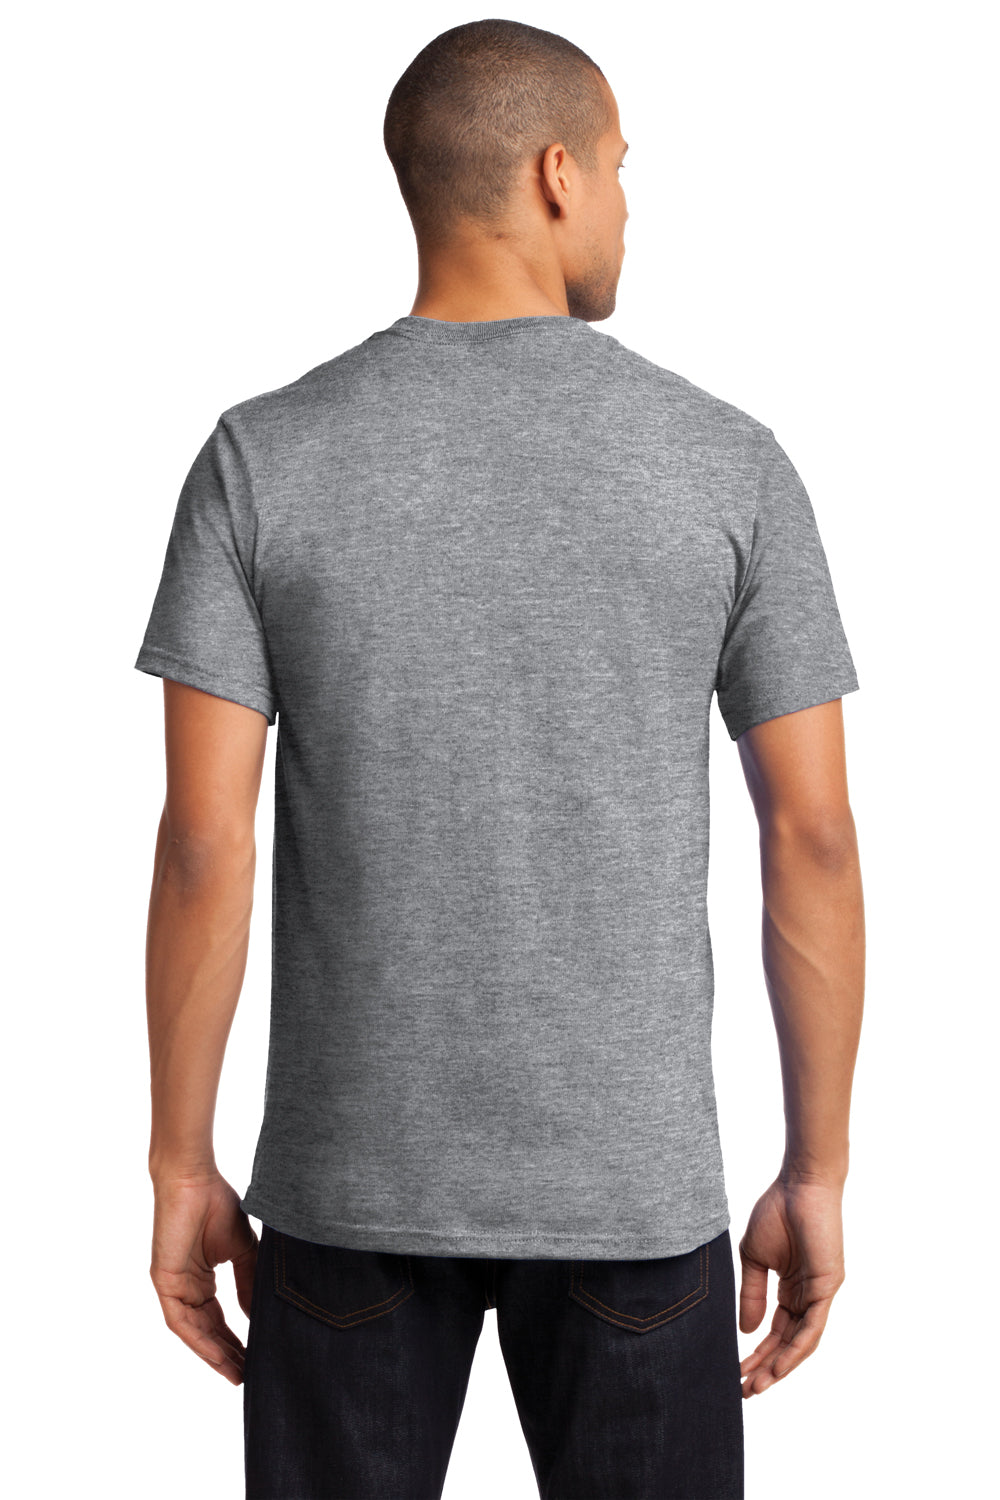 Port & Company PC61P Mens Essential Short Sleeve Crewneck T-Shirt w/ Pocket Heather Grey Back